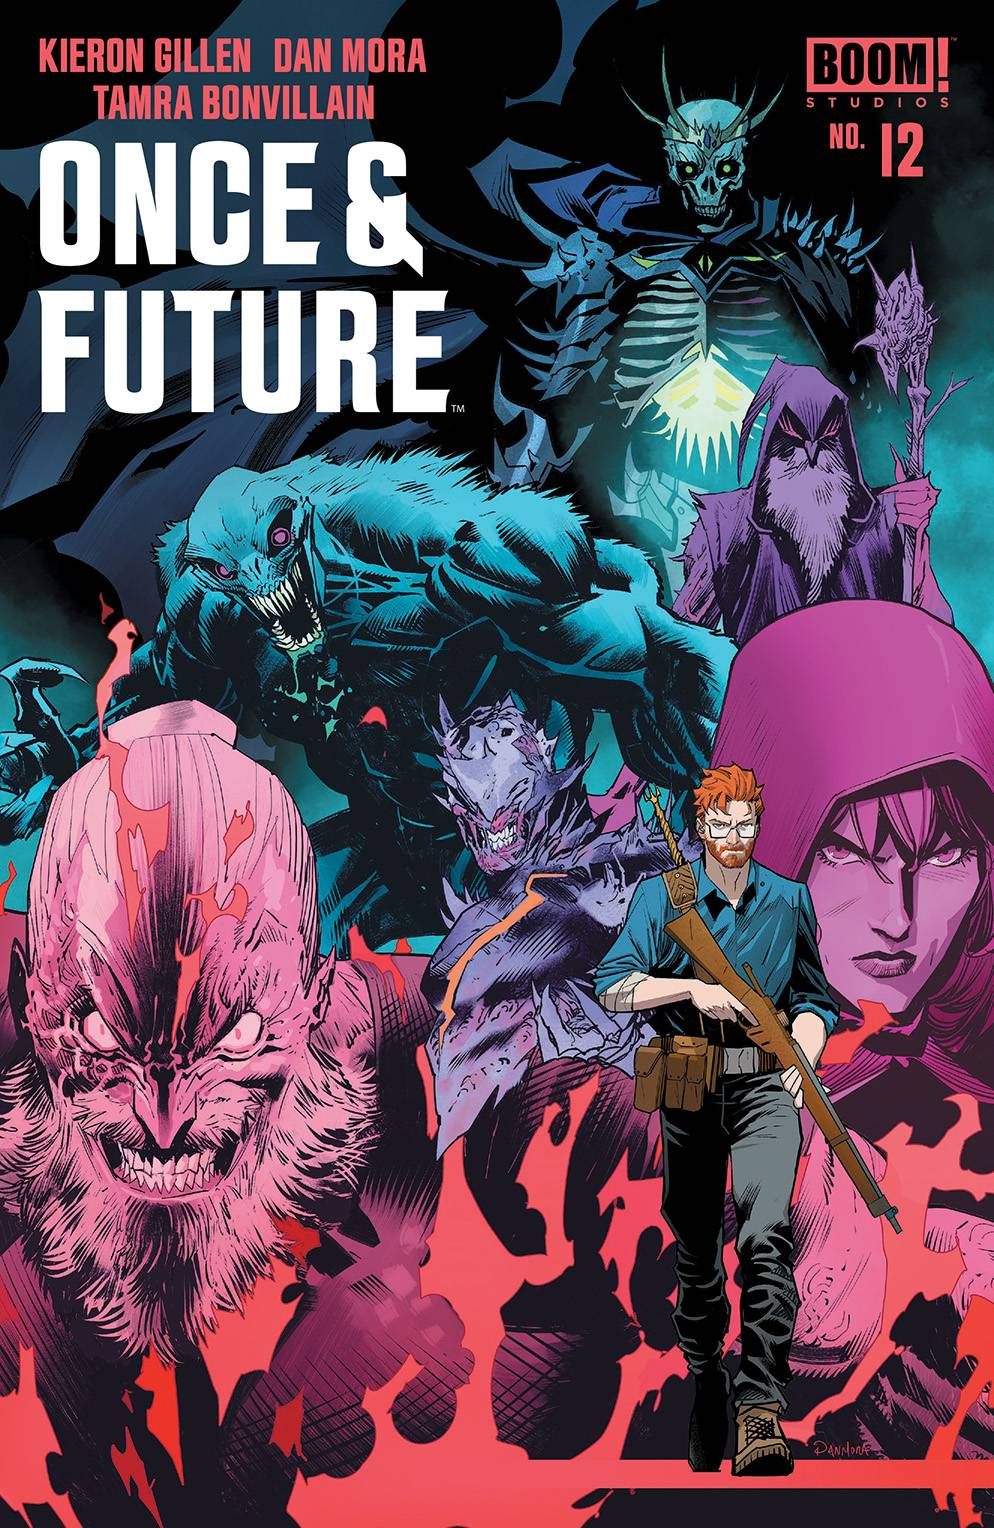 Once & Future #12 (2020)